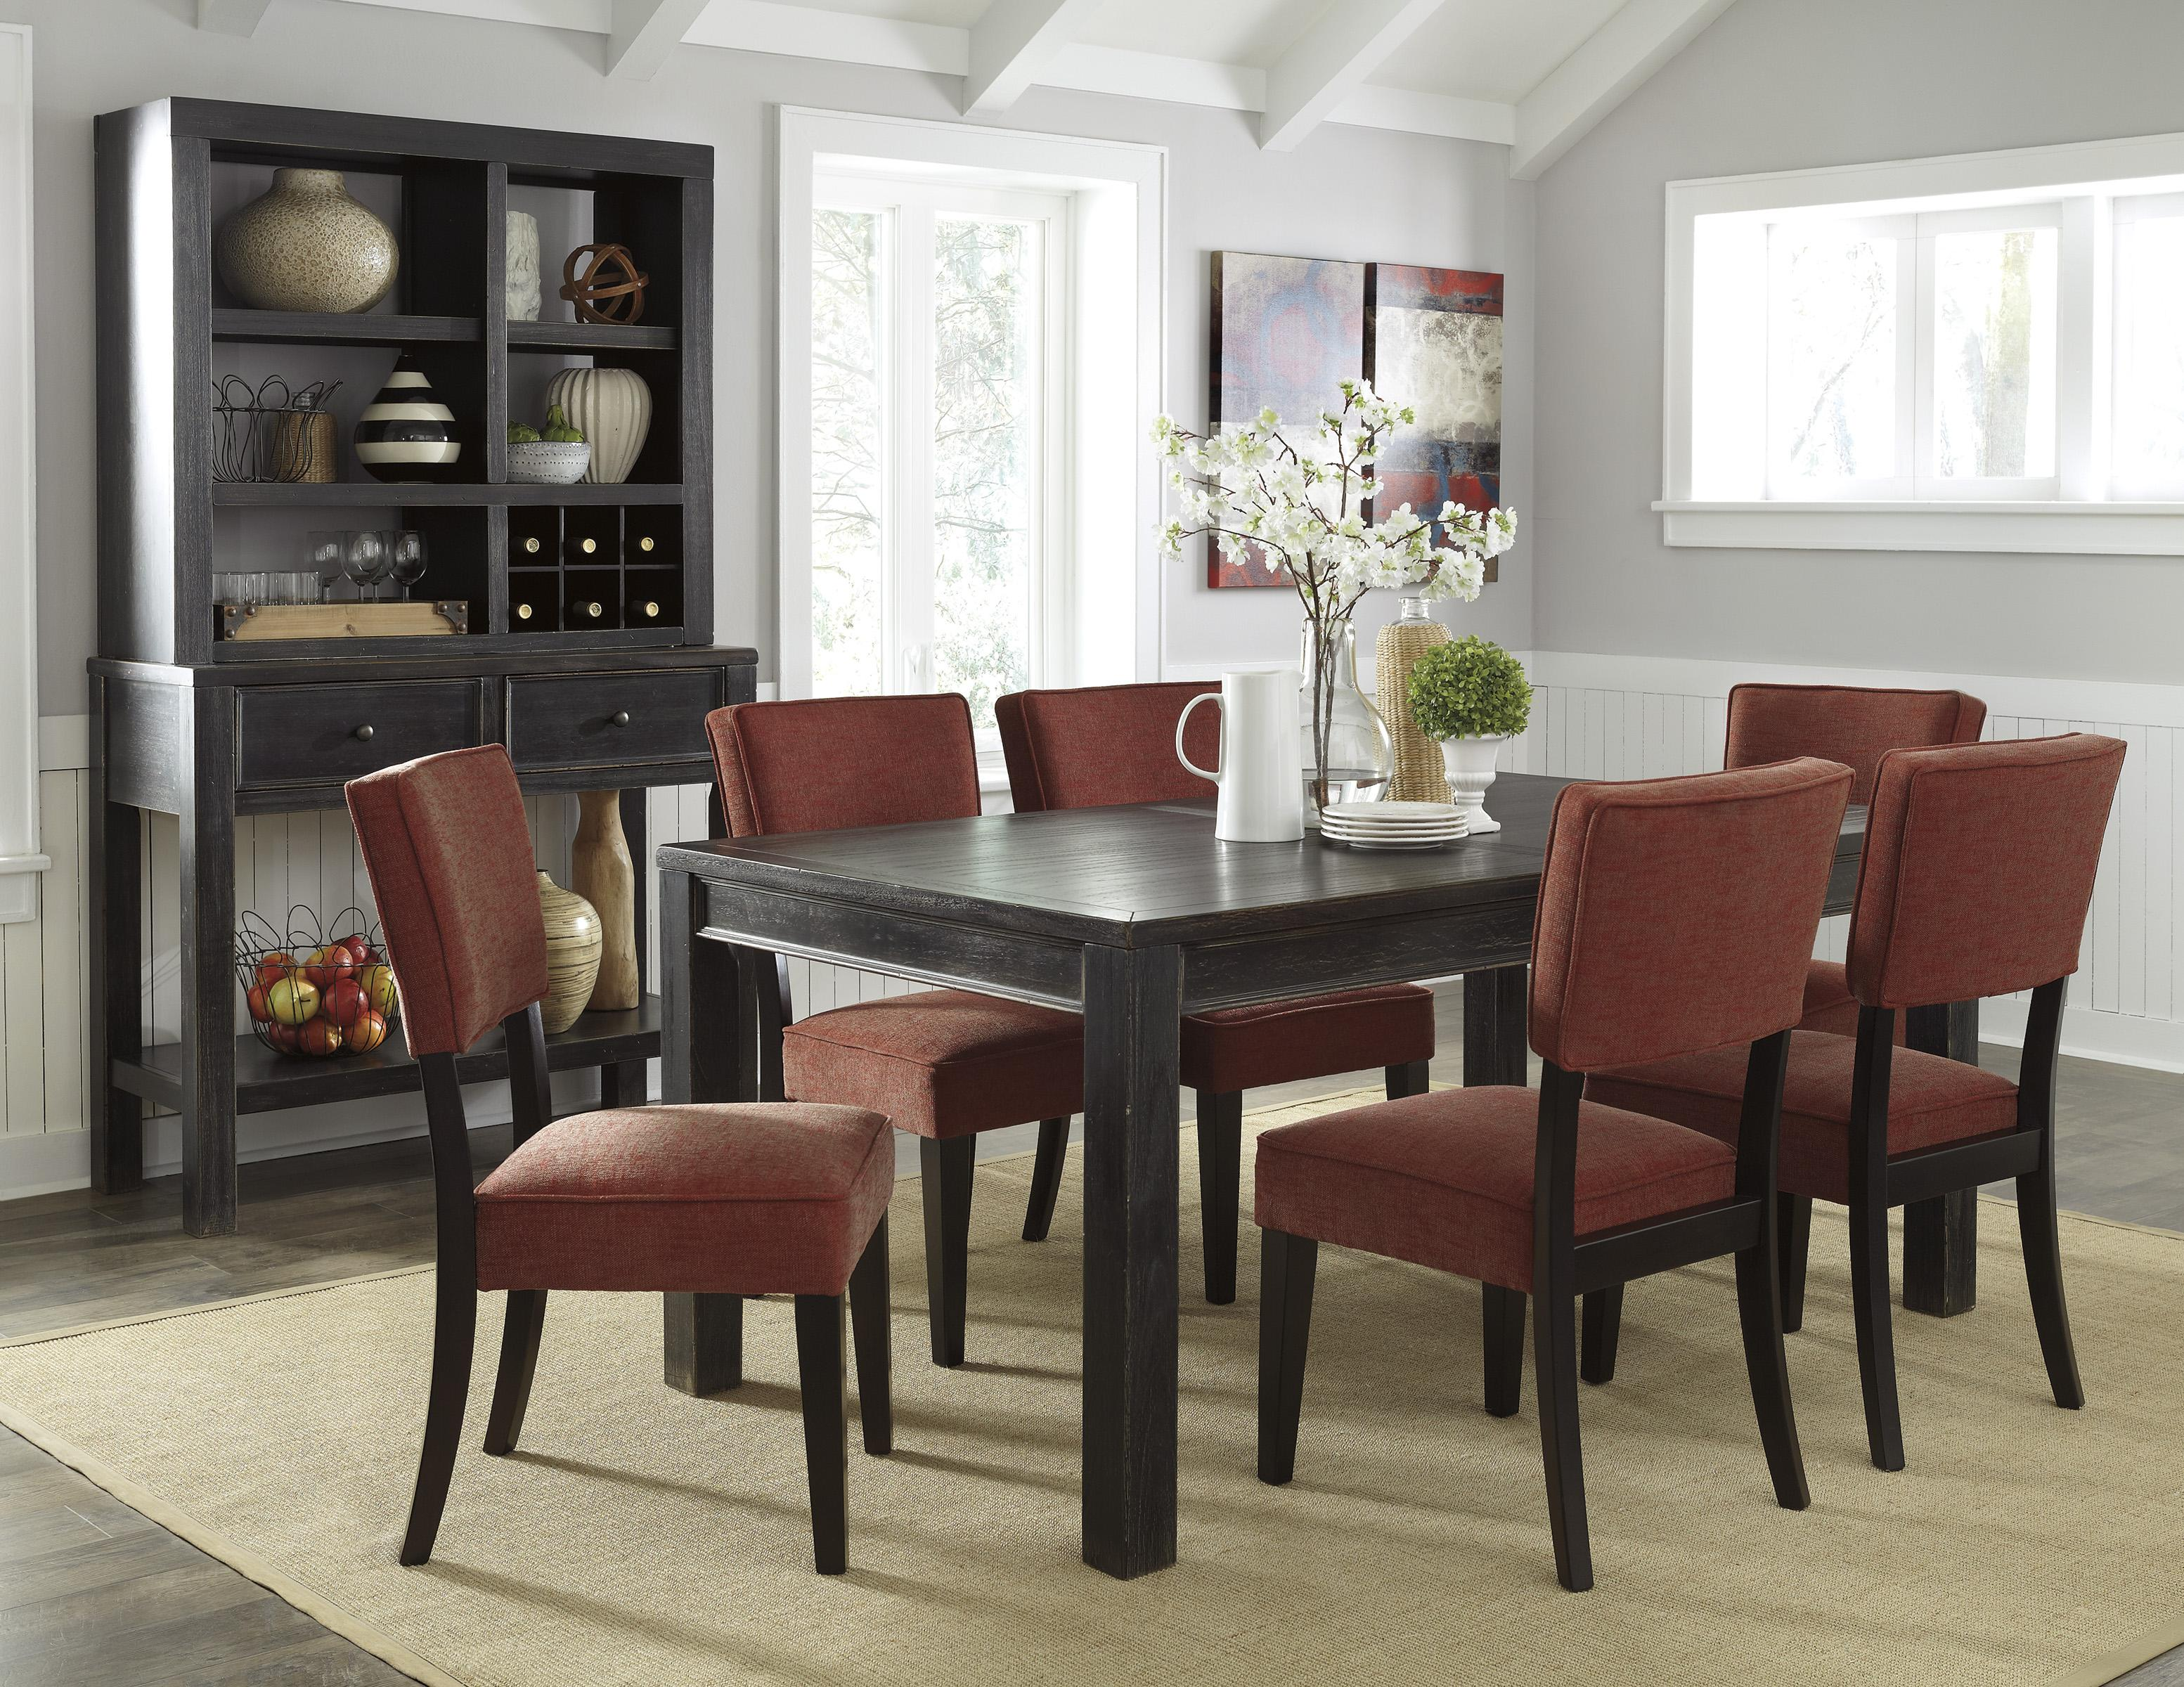 Signature Design by Ashley Gavelston Casual Dining Room Group - Item Number: D532 Dining Room Group 14